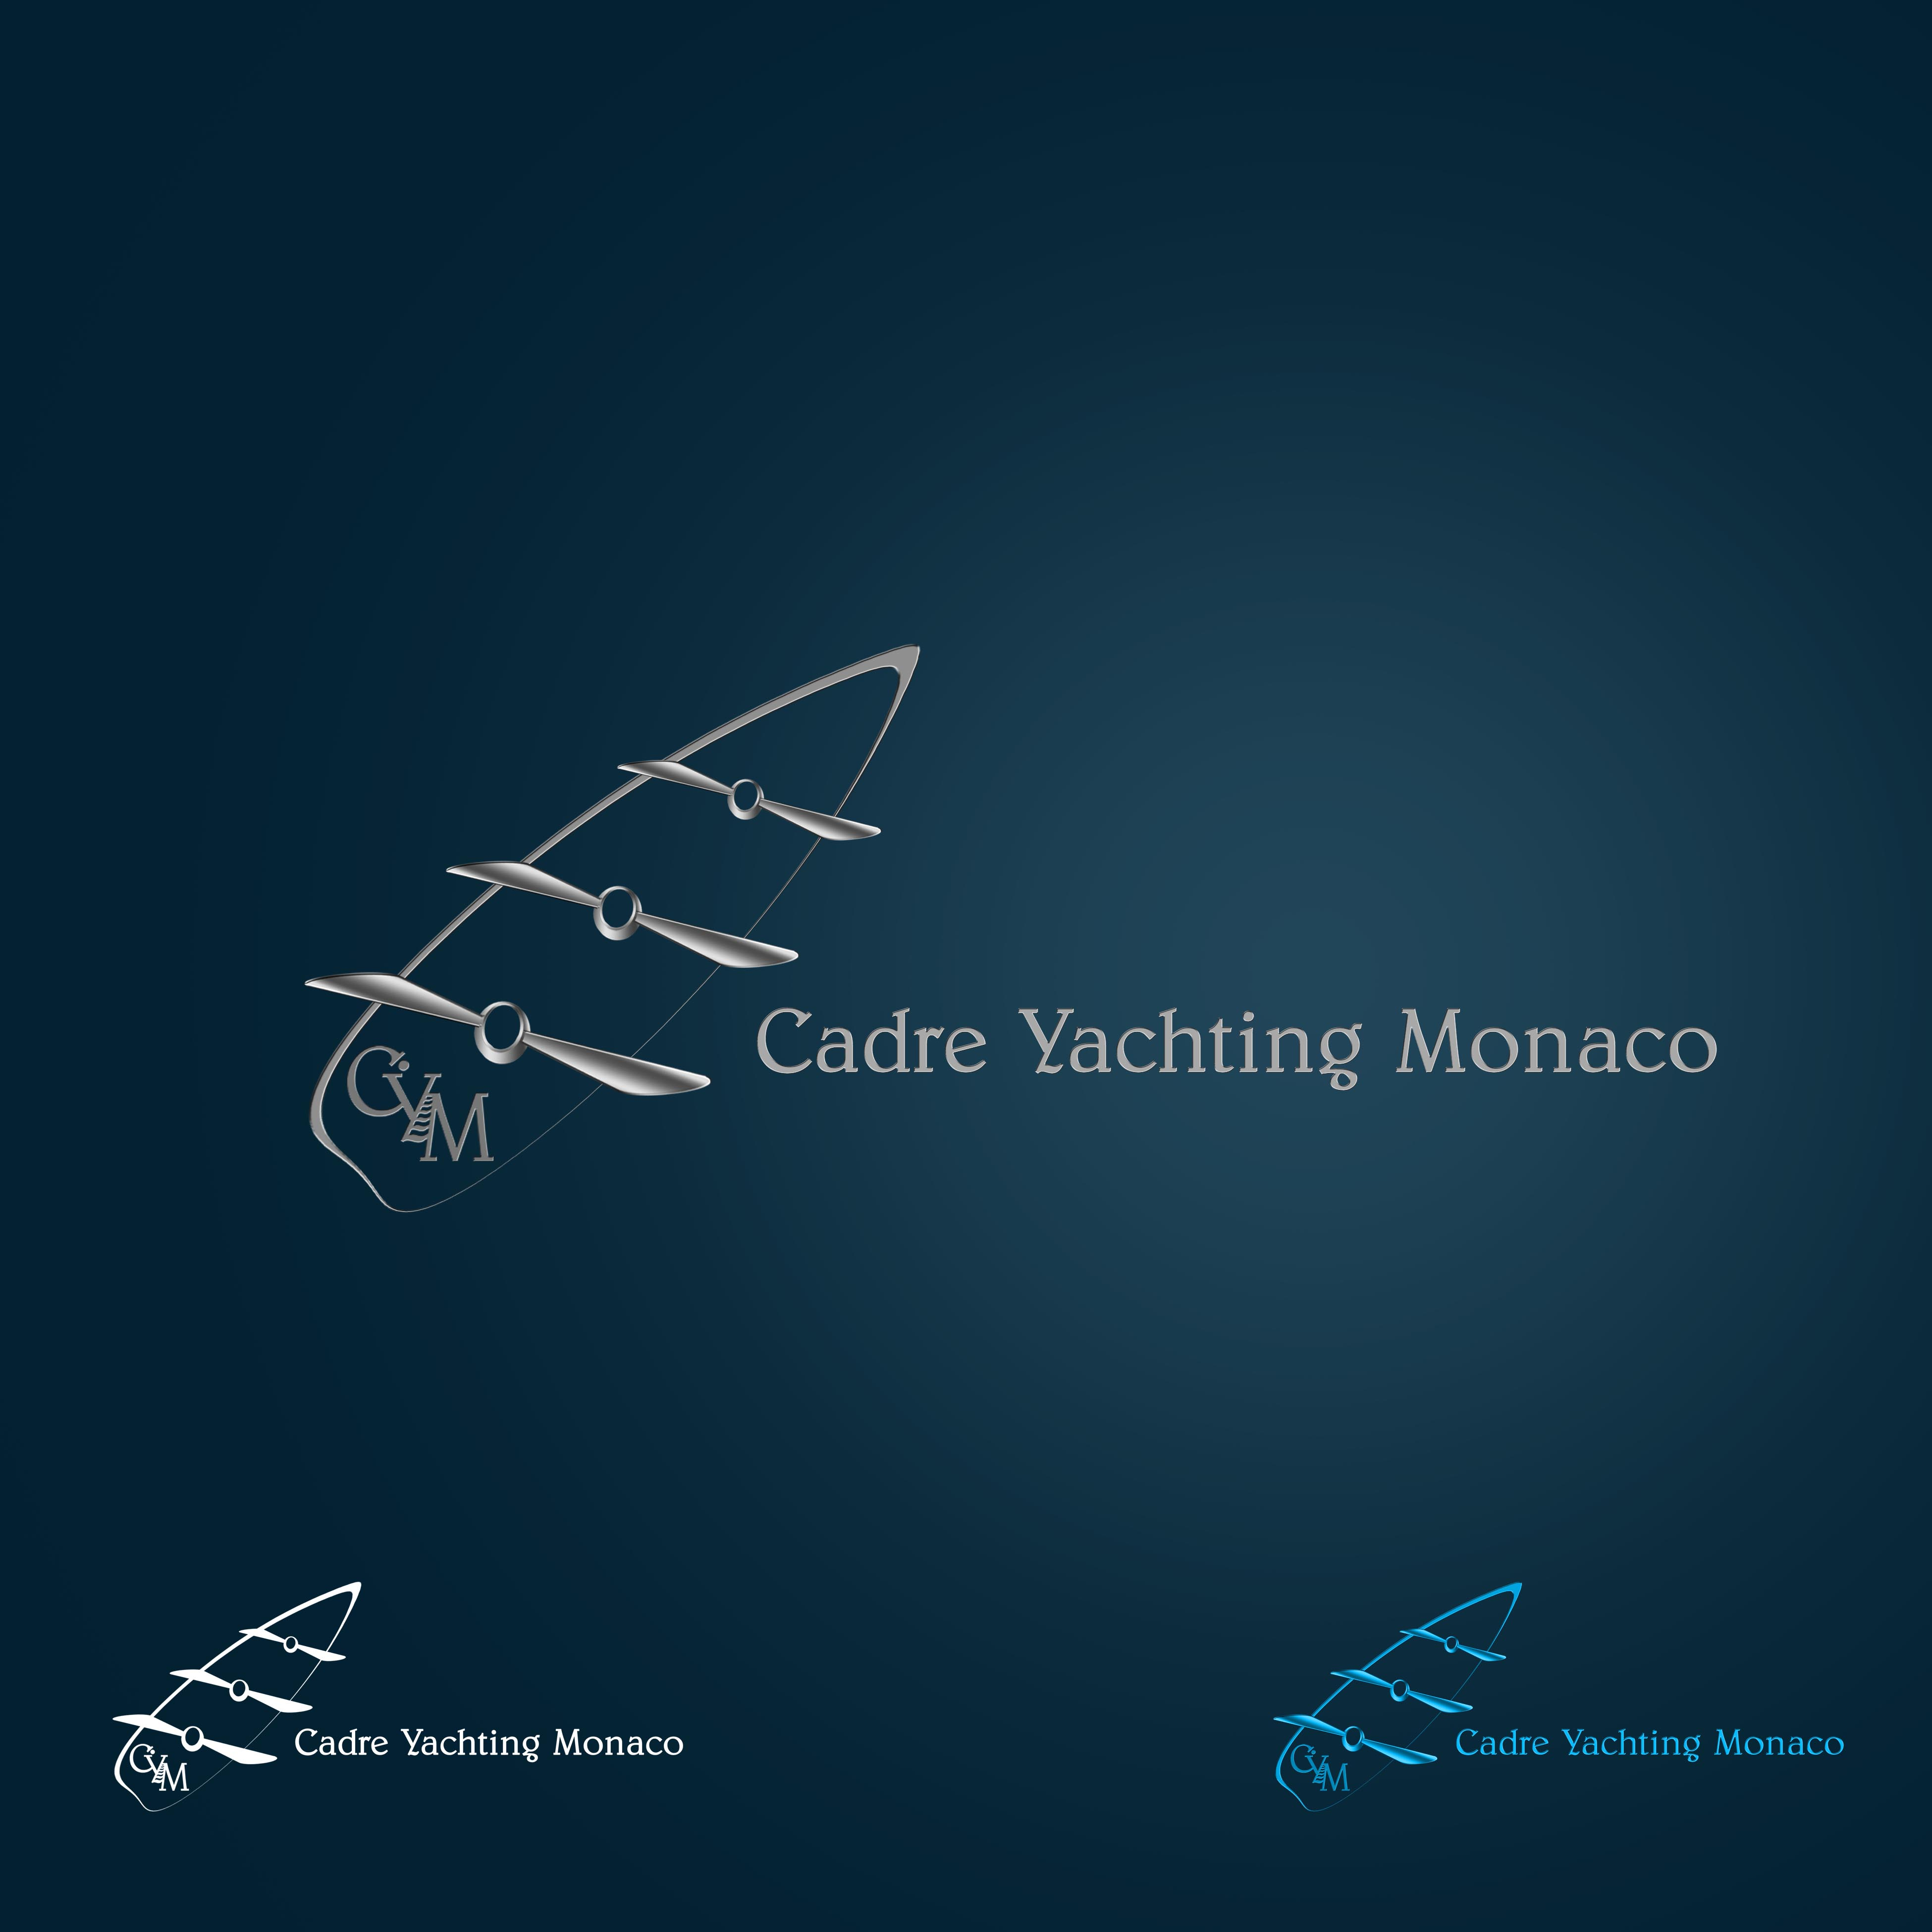 Logo Design by Cesar III Sotto - Entry No. 155 in the Logo Design Contest New Logo Design for Cadre Yachting Monaco.